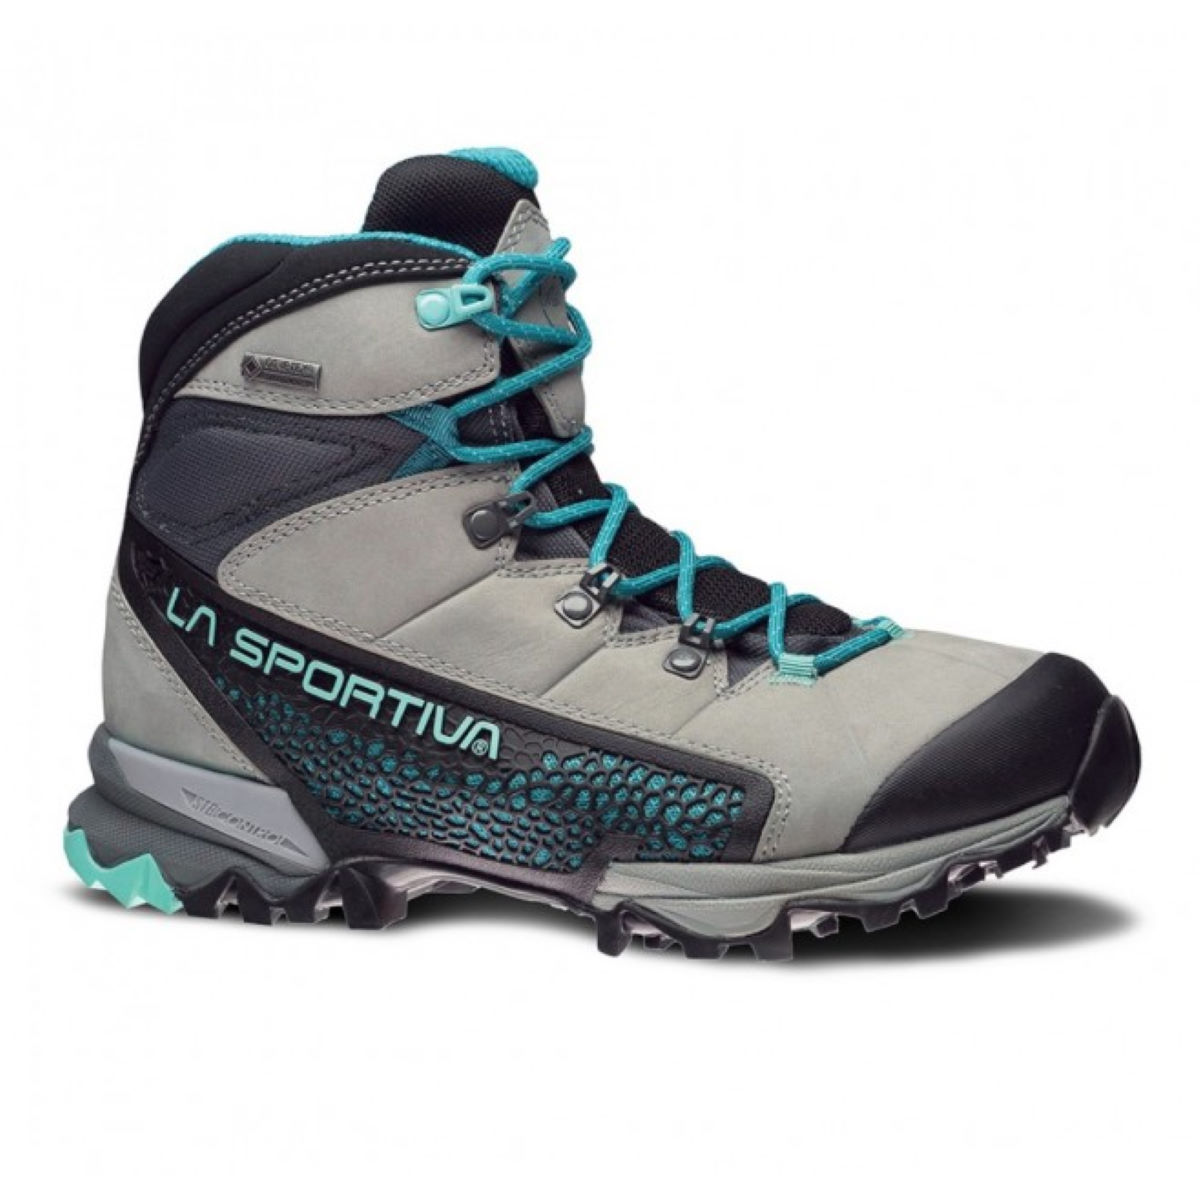 Chaussures Femme La Sportiva Nucleo GTX - 40 Grey/Mint